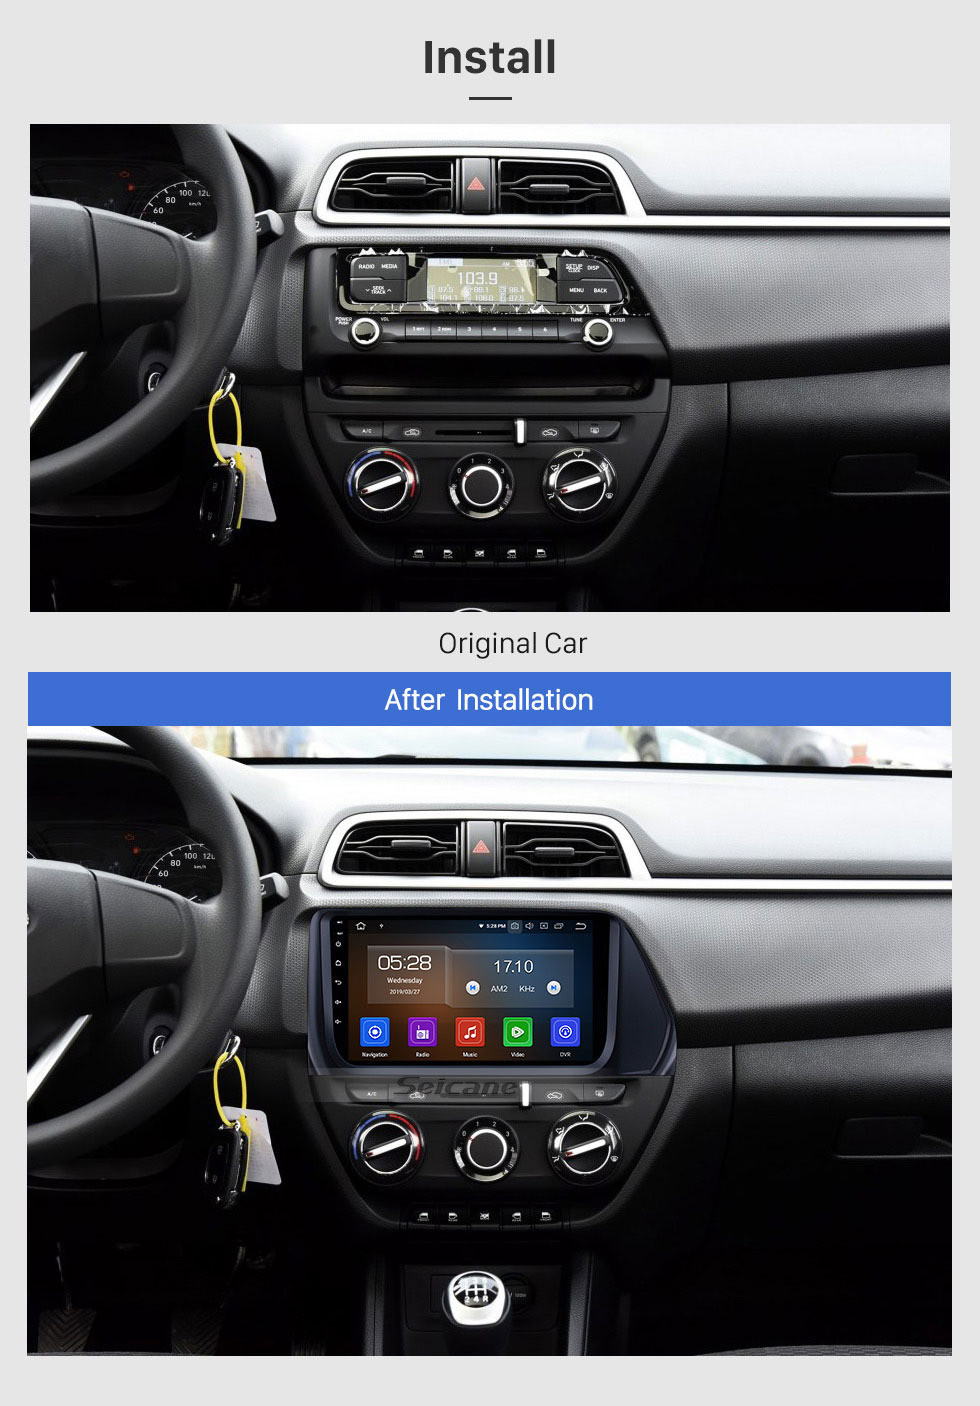 Seicane 2017 Hyundai VERNA 9 inch Android 9.0 Bluetooth Radio with GPS Navigation Wifi Mirror Link USB Steering Wheel Control support Wireless Rearview Camera OBD2 DAB+ DVR